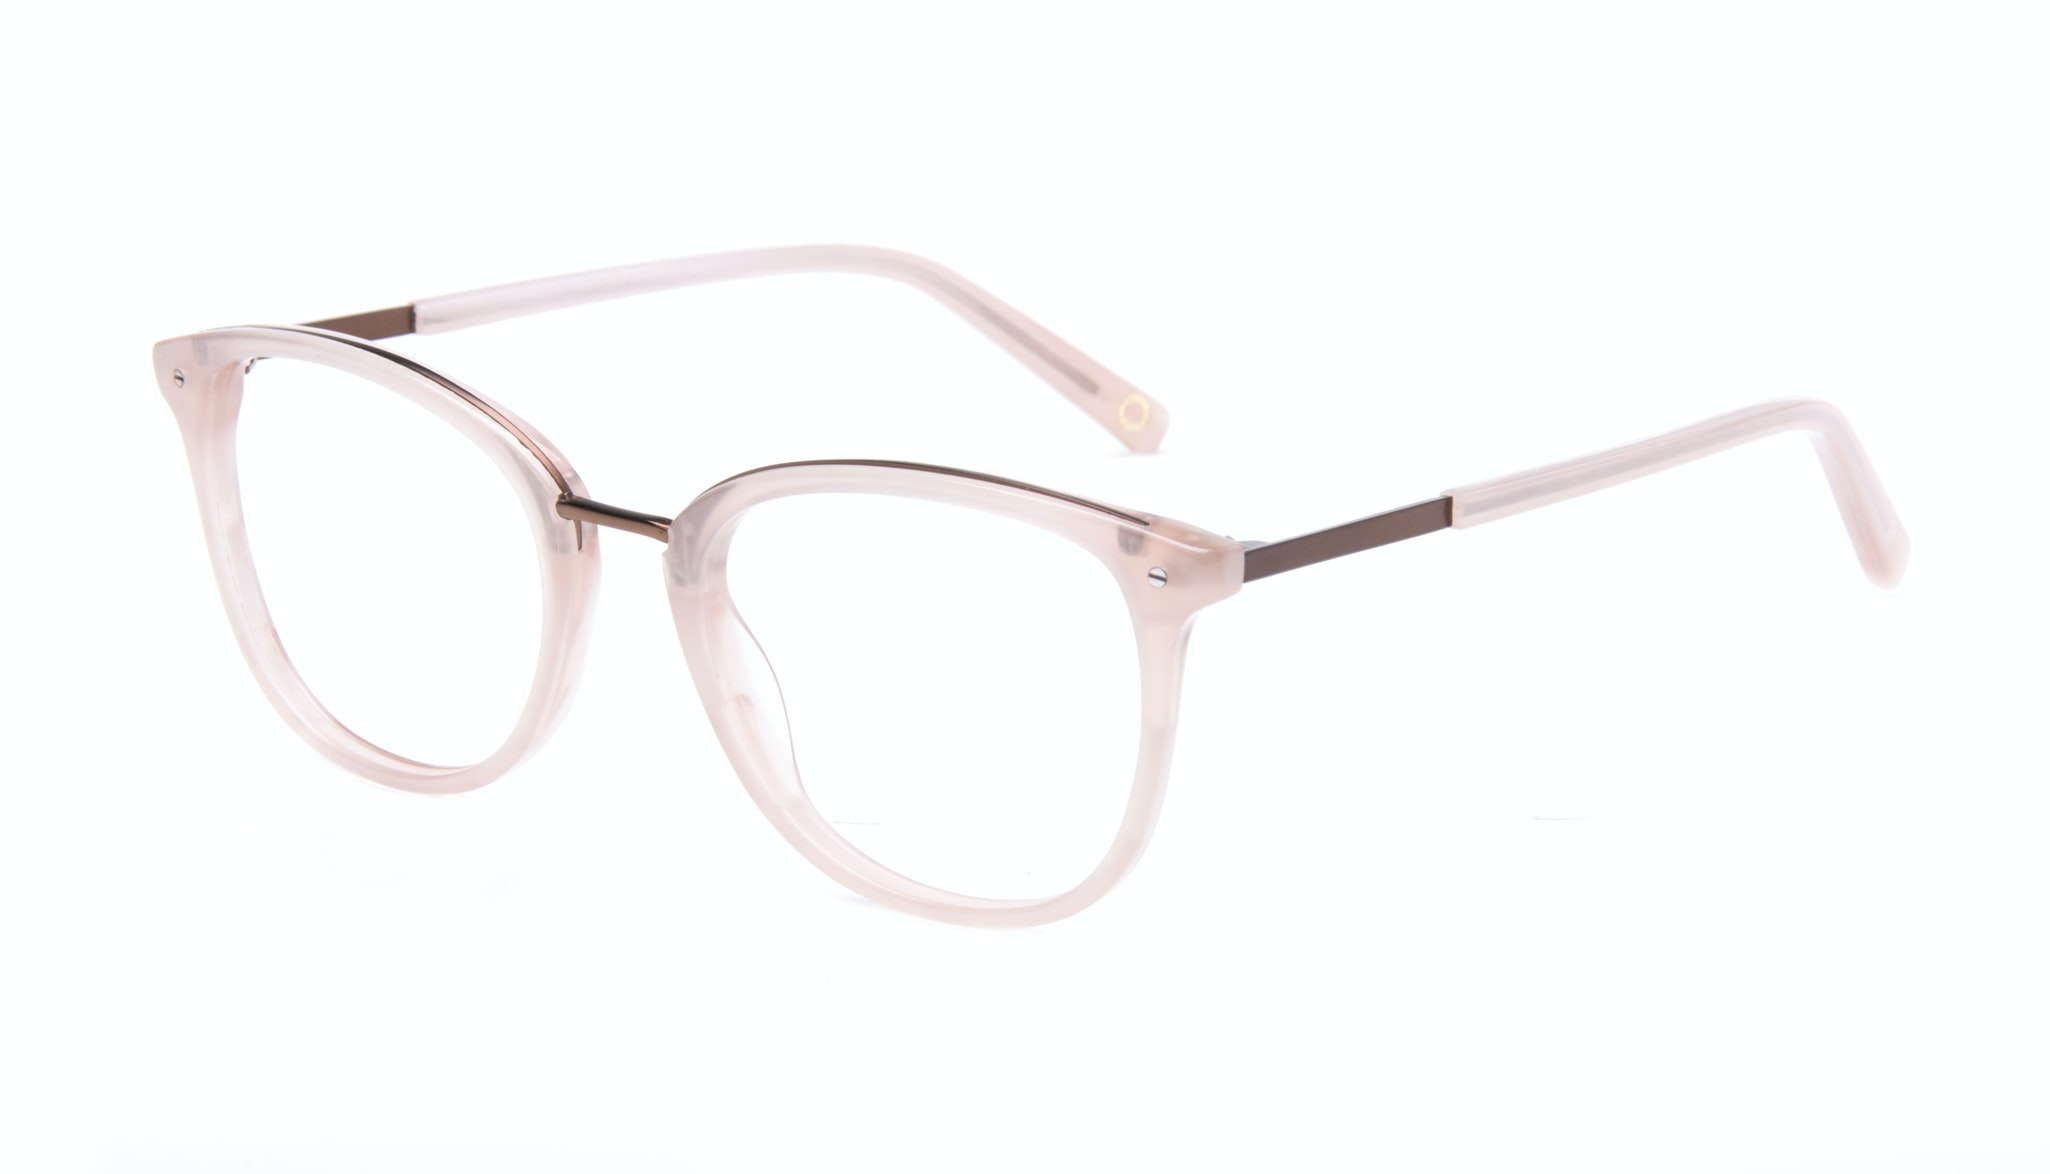 Affordable Fashion Glasses Square Round Eyeglasses Women Ella Blush Tilt